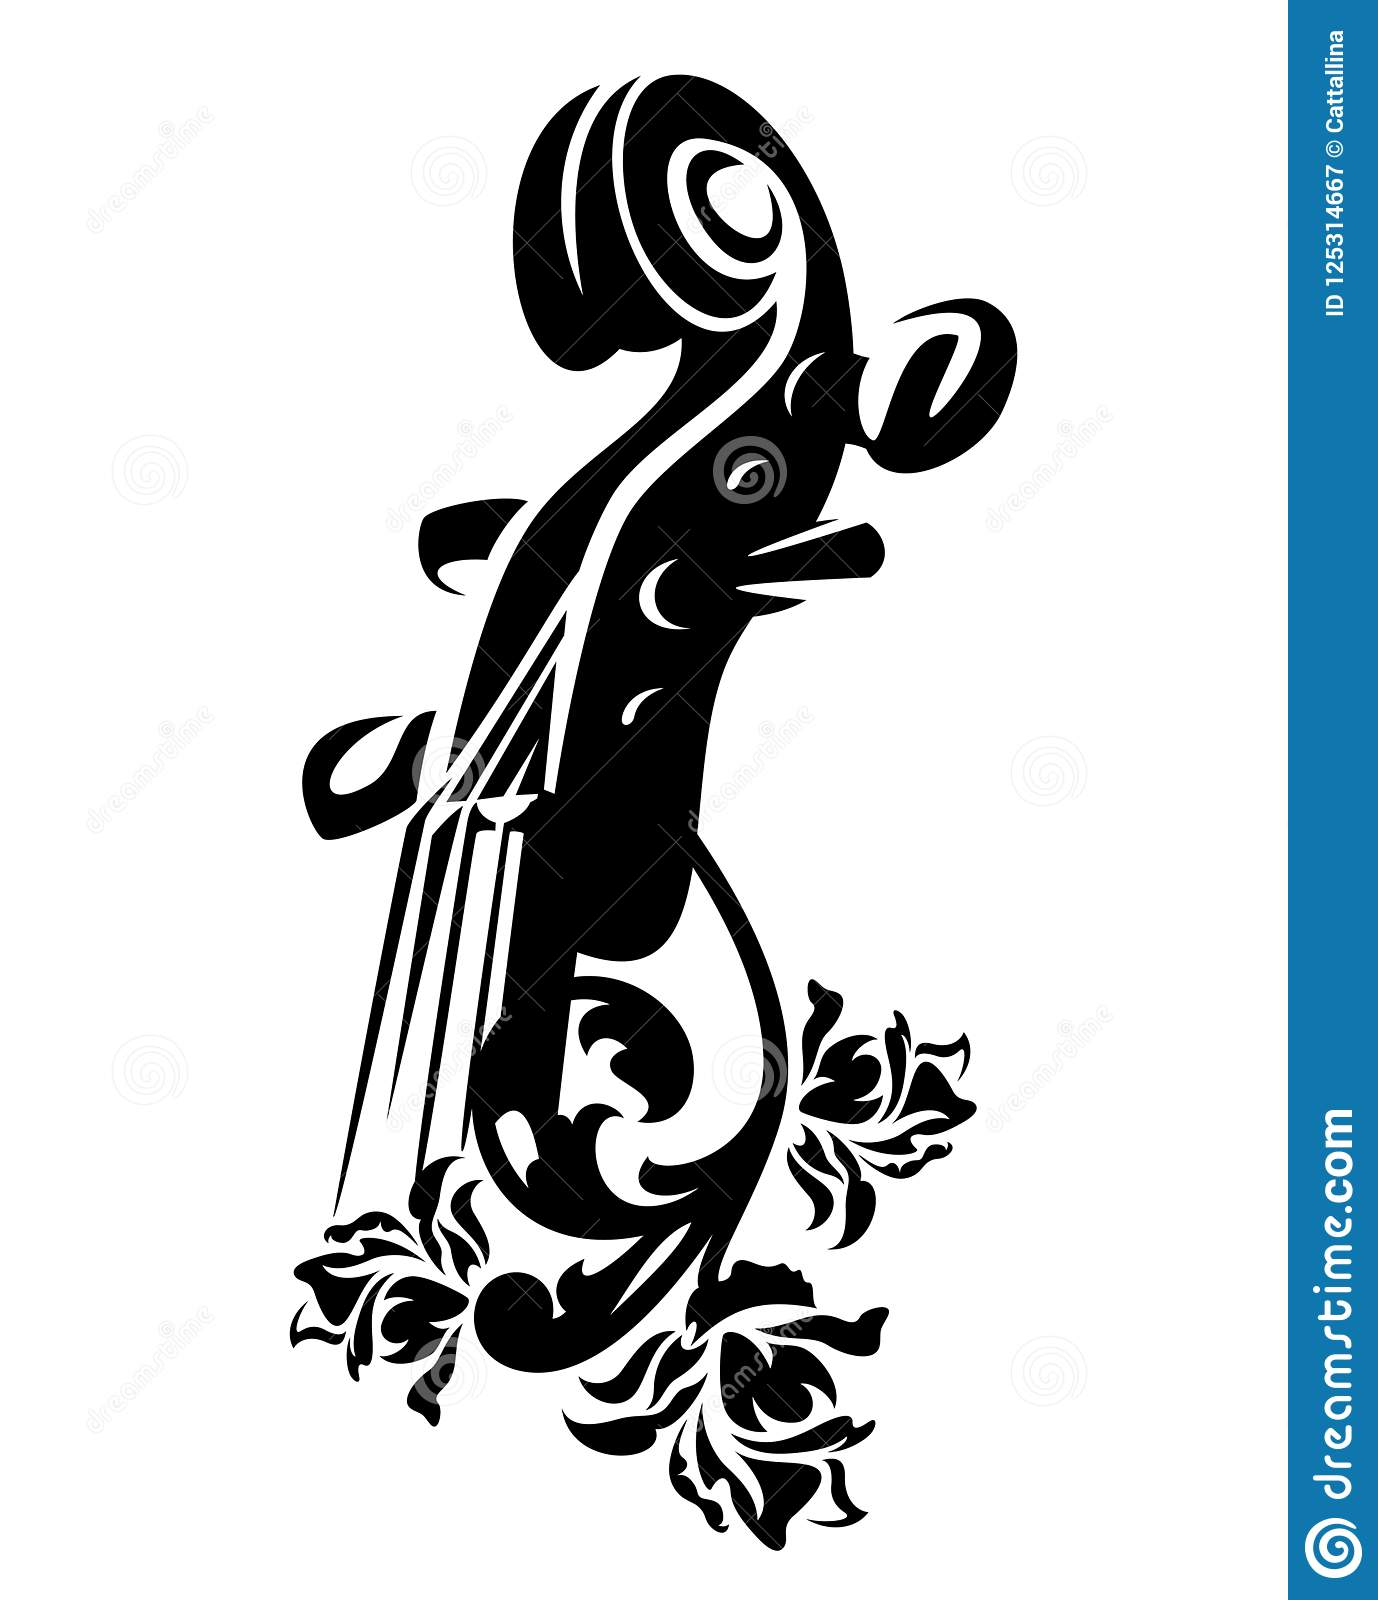 Violin Among Rose Flowers Vector Design Stock Vector Illustration